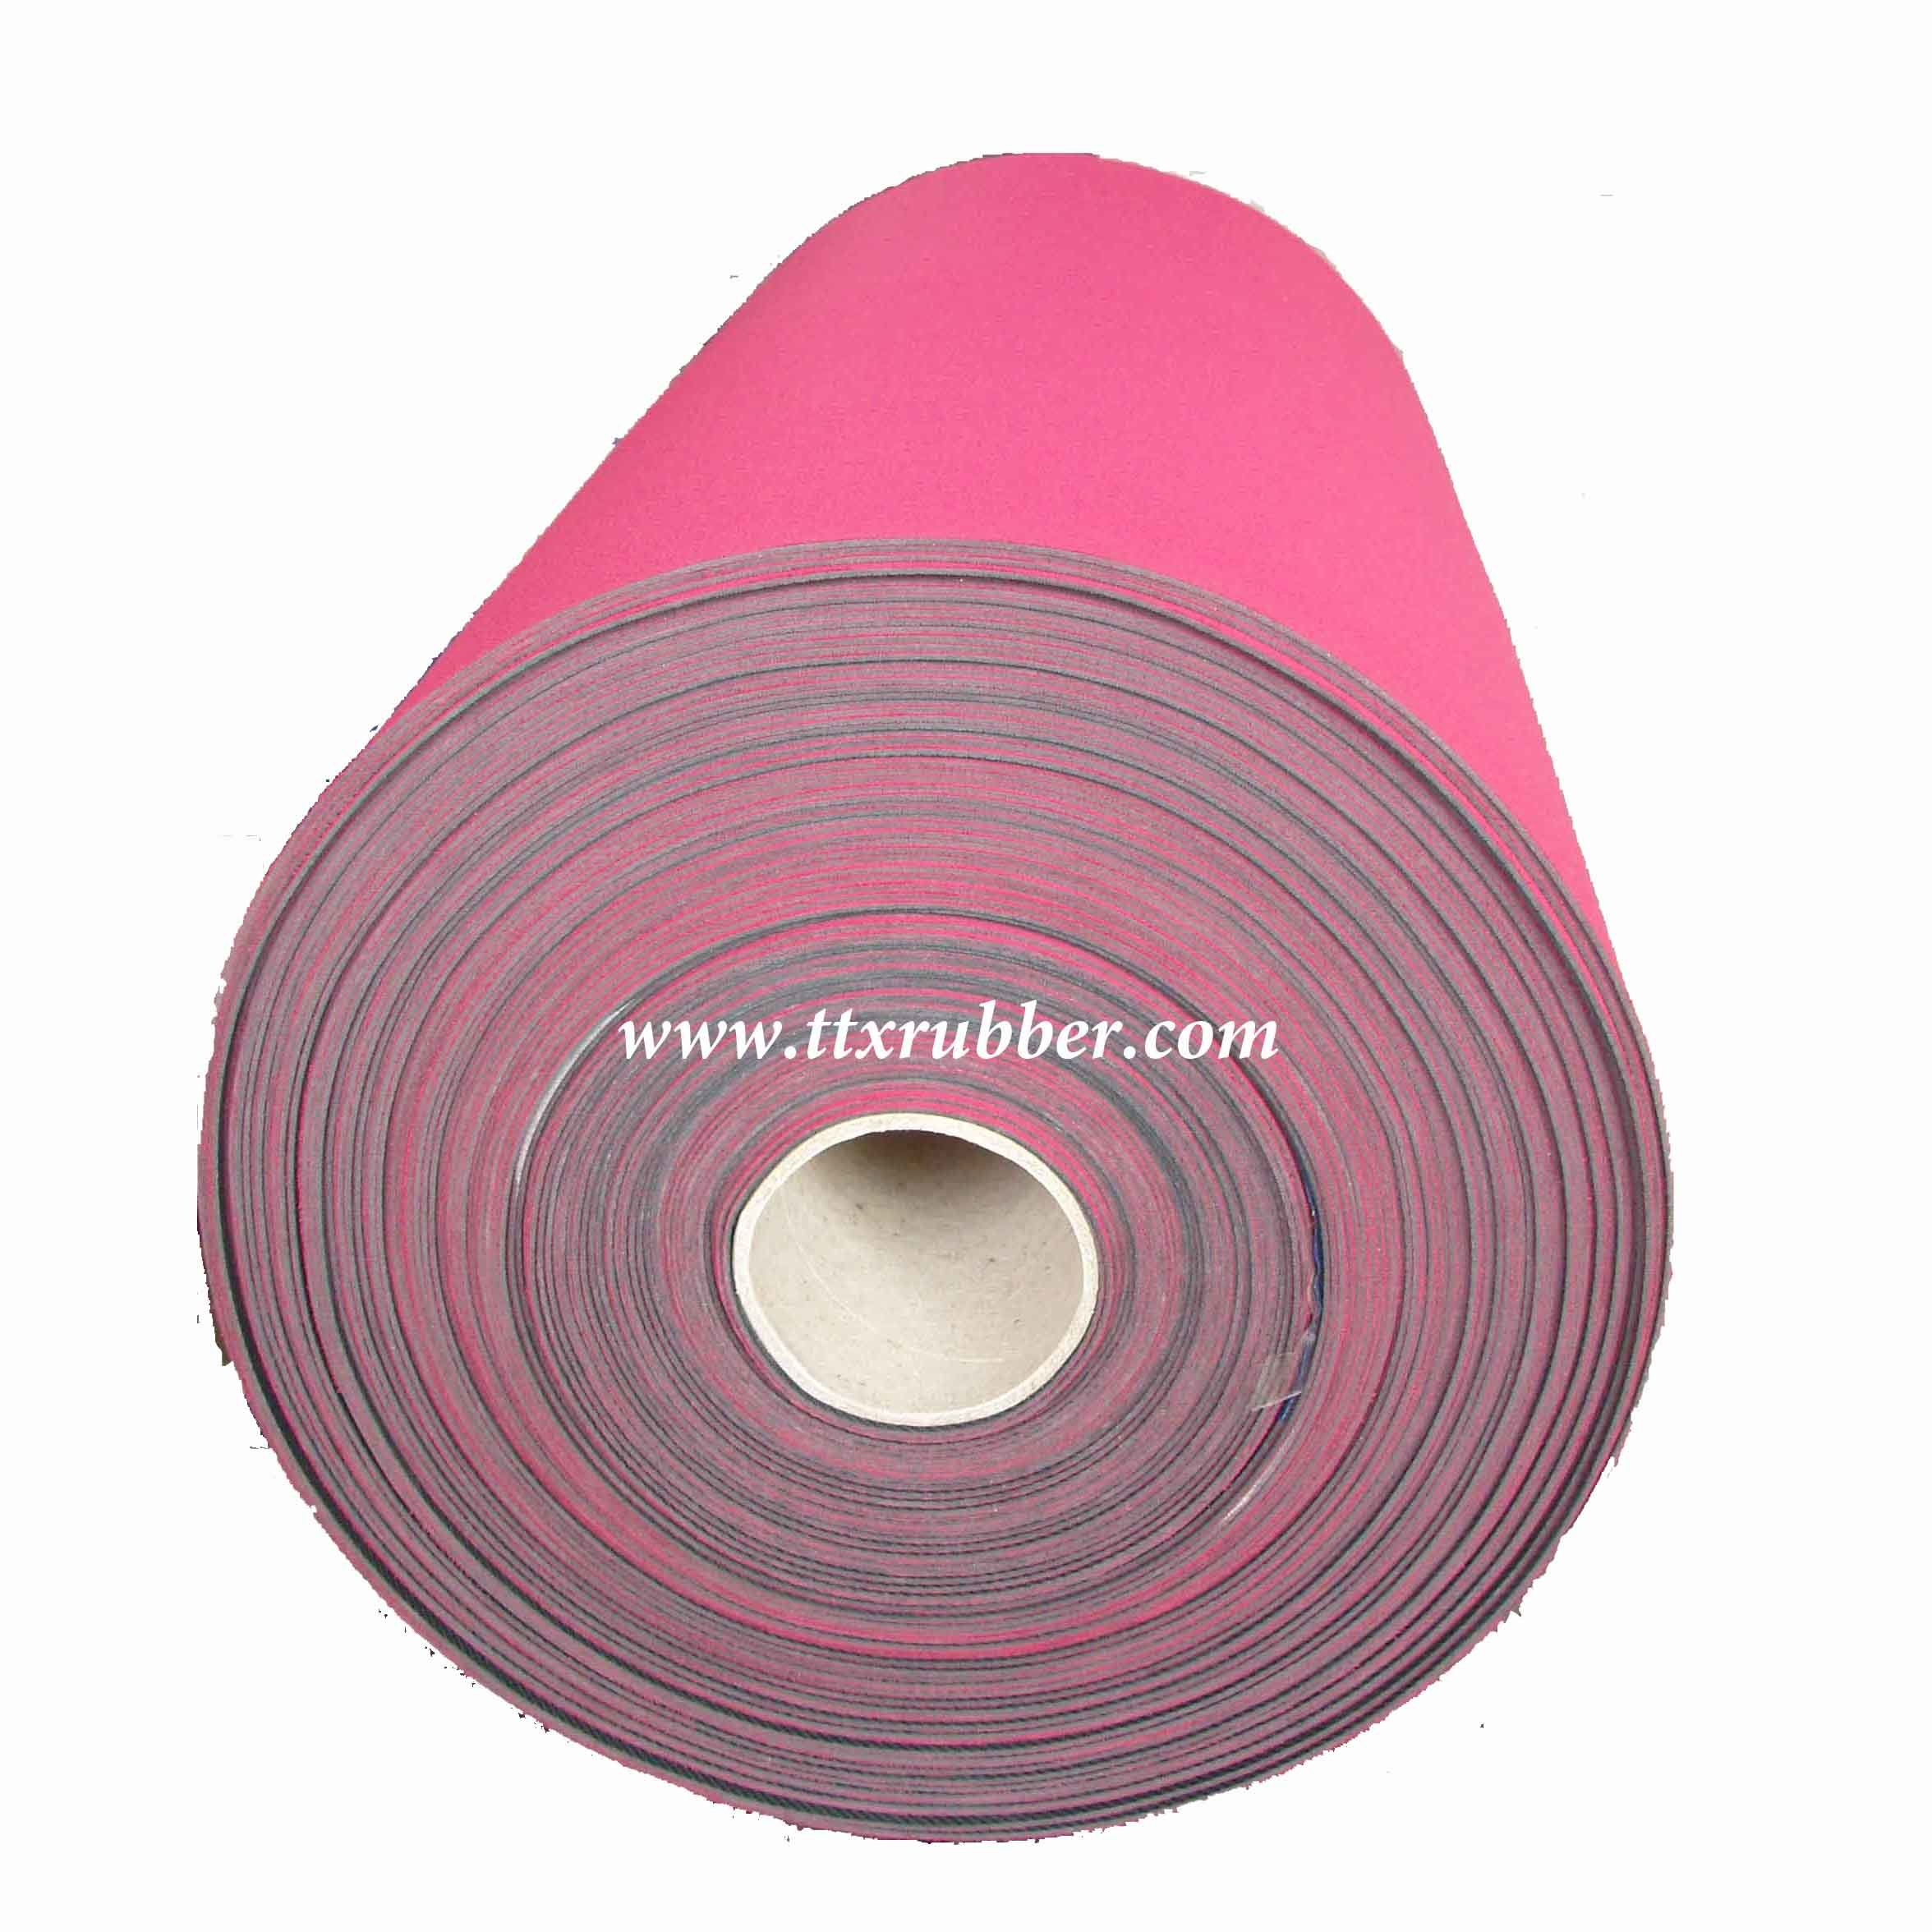 Rubber Floor Runner, Rubber Floor Protector, Floor Surface Shield